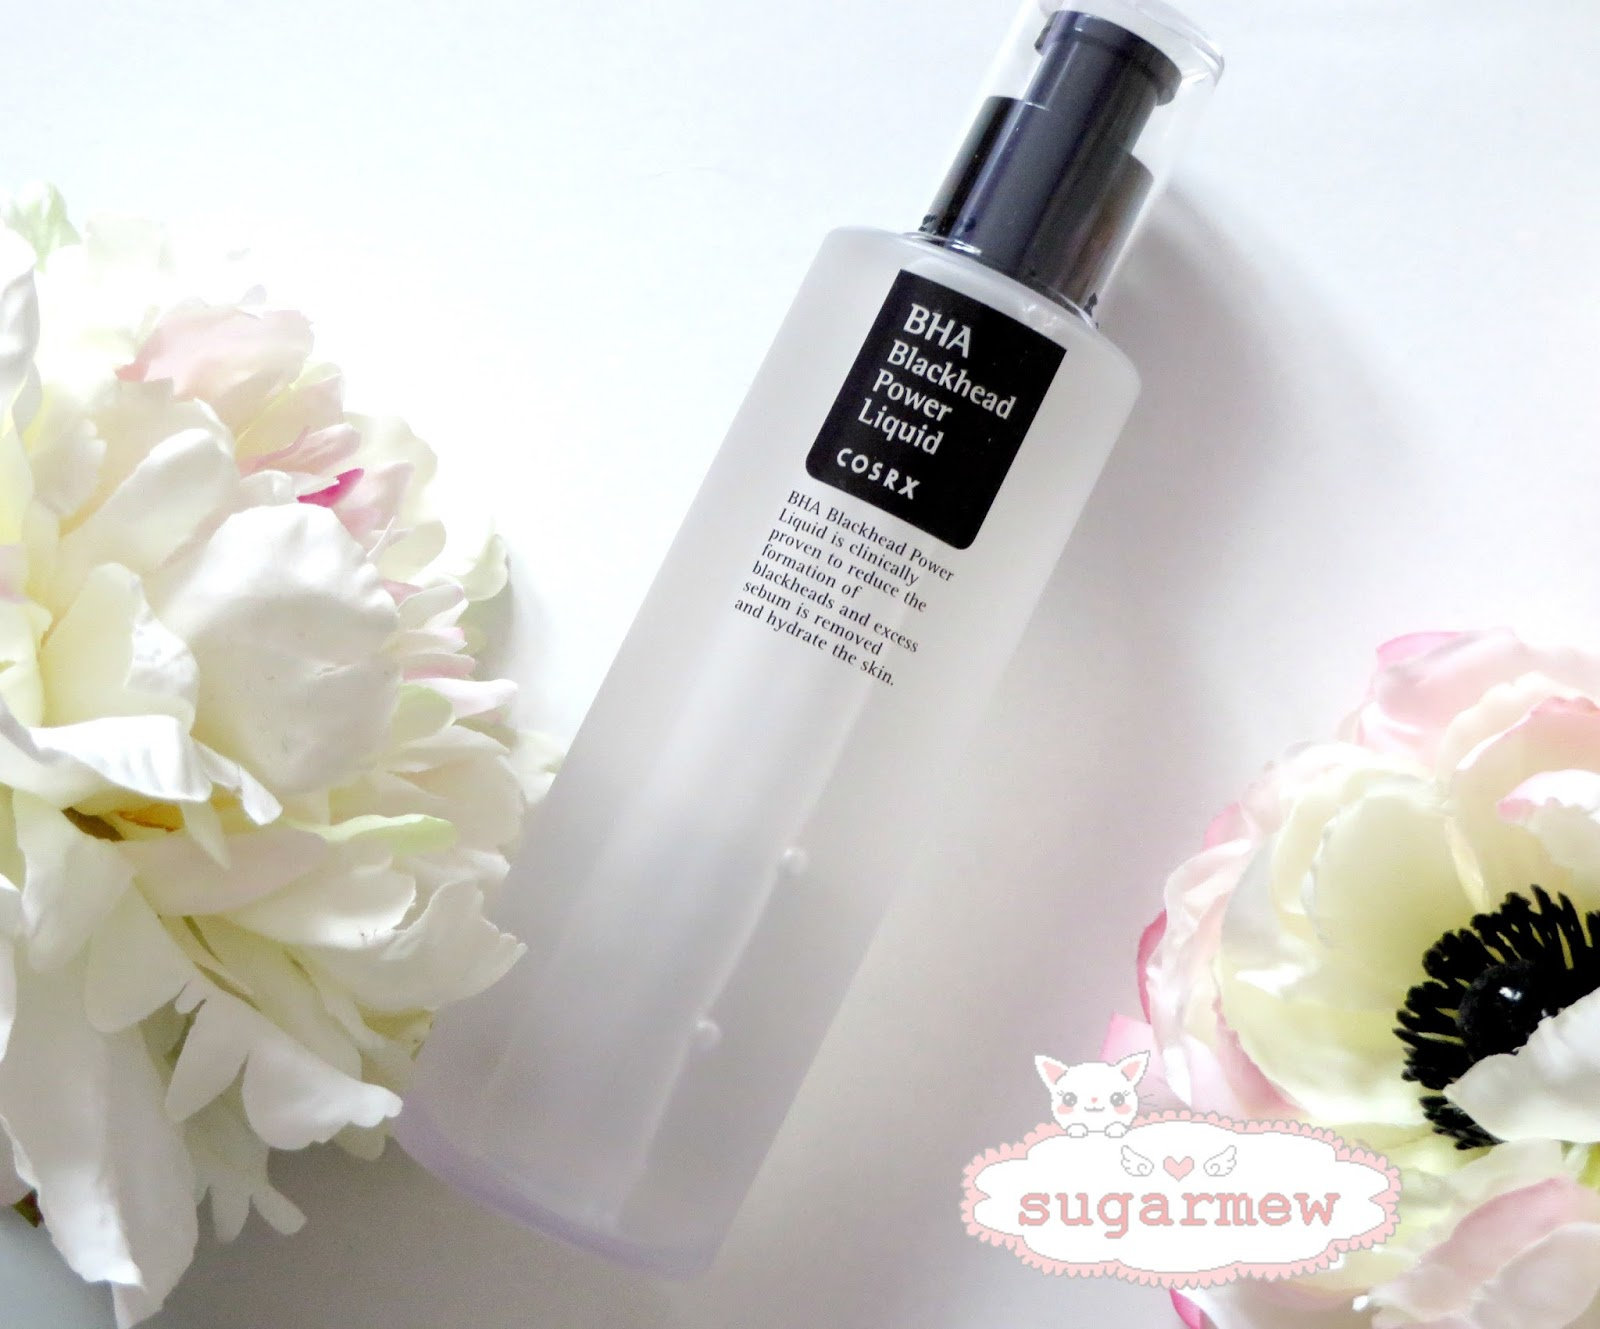 BHA Blackhead Power Liquid by cosrx #3